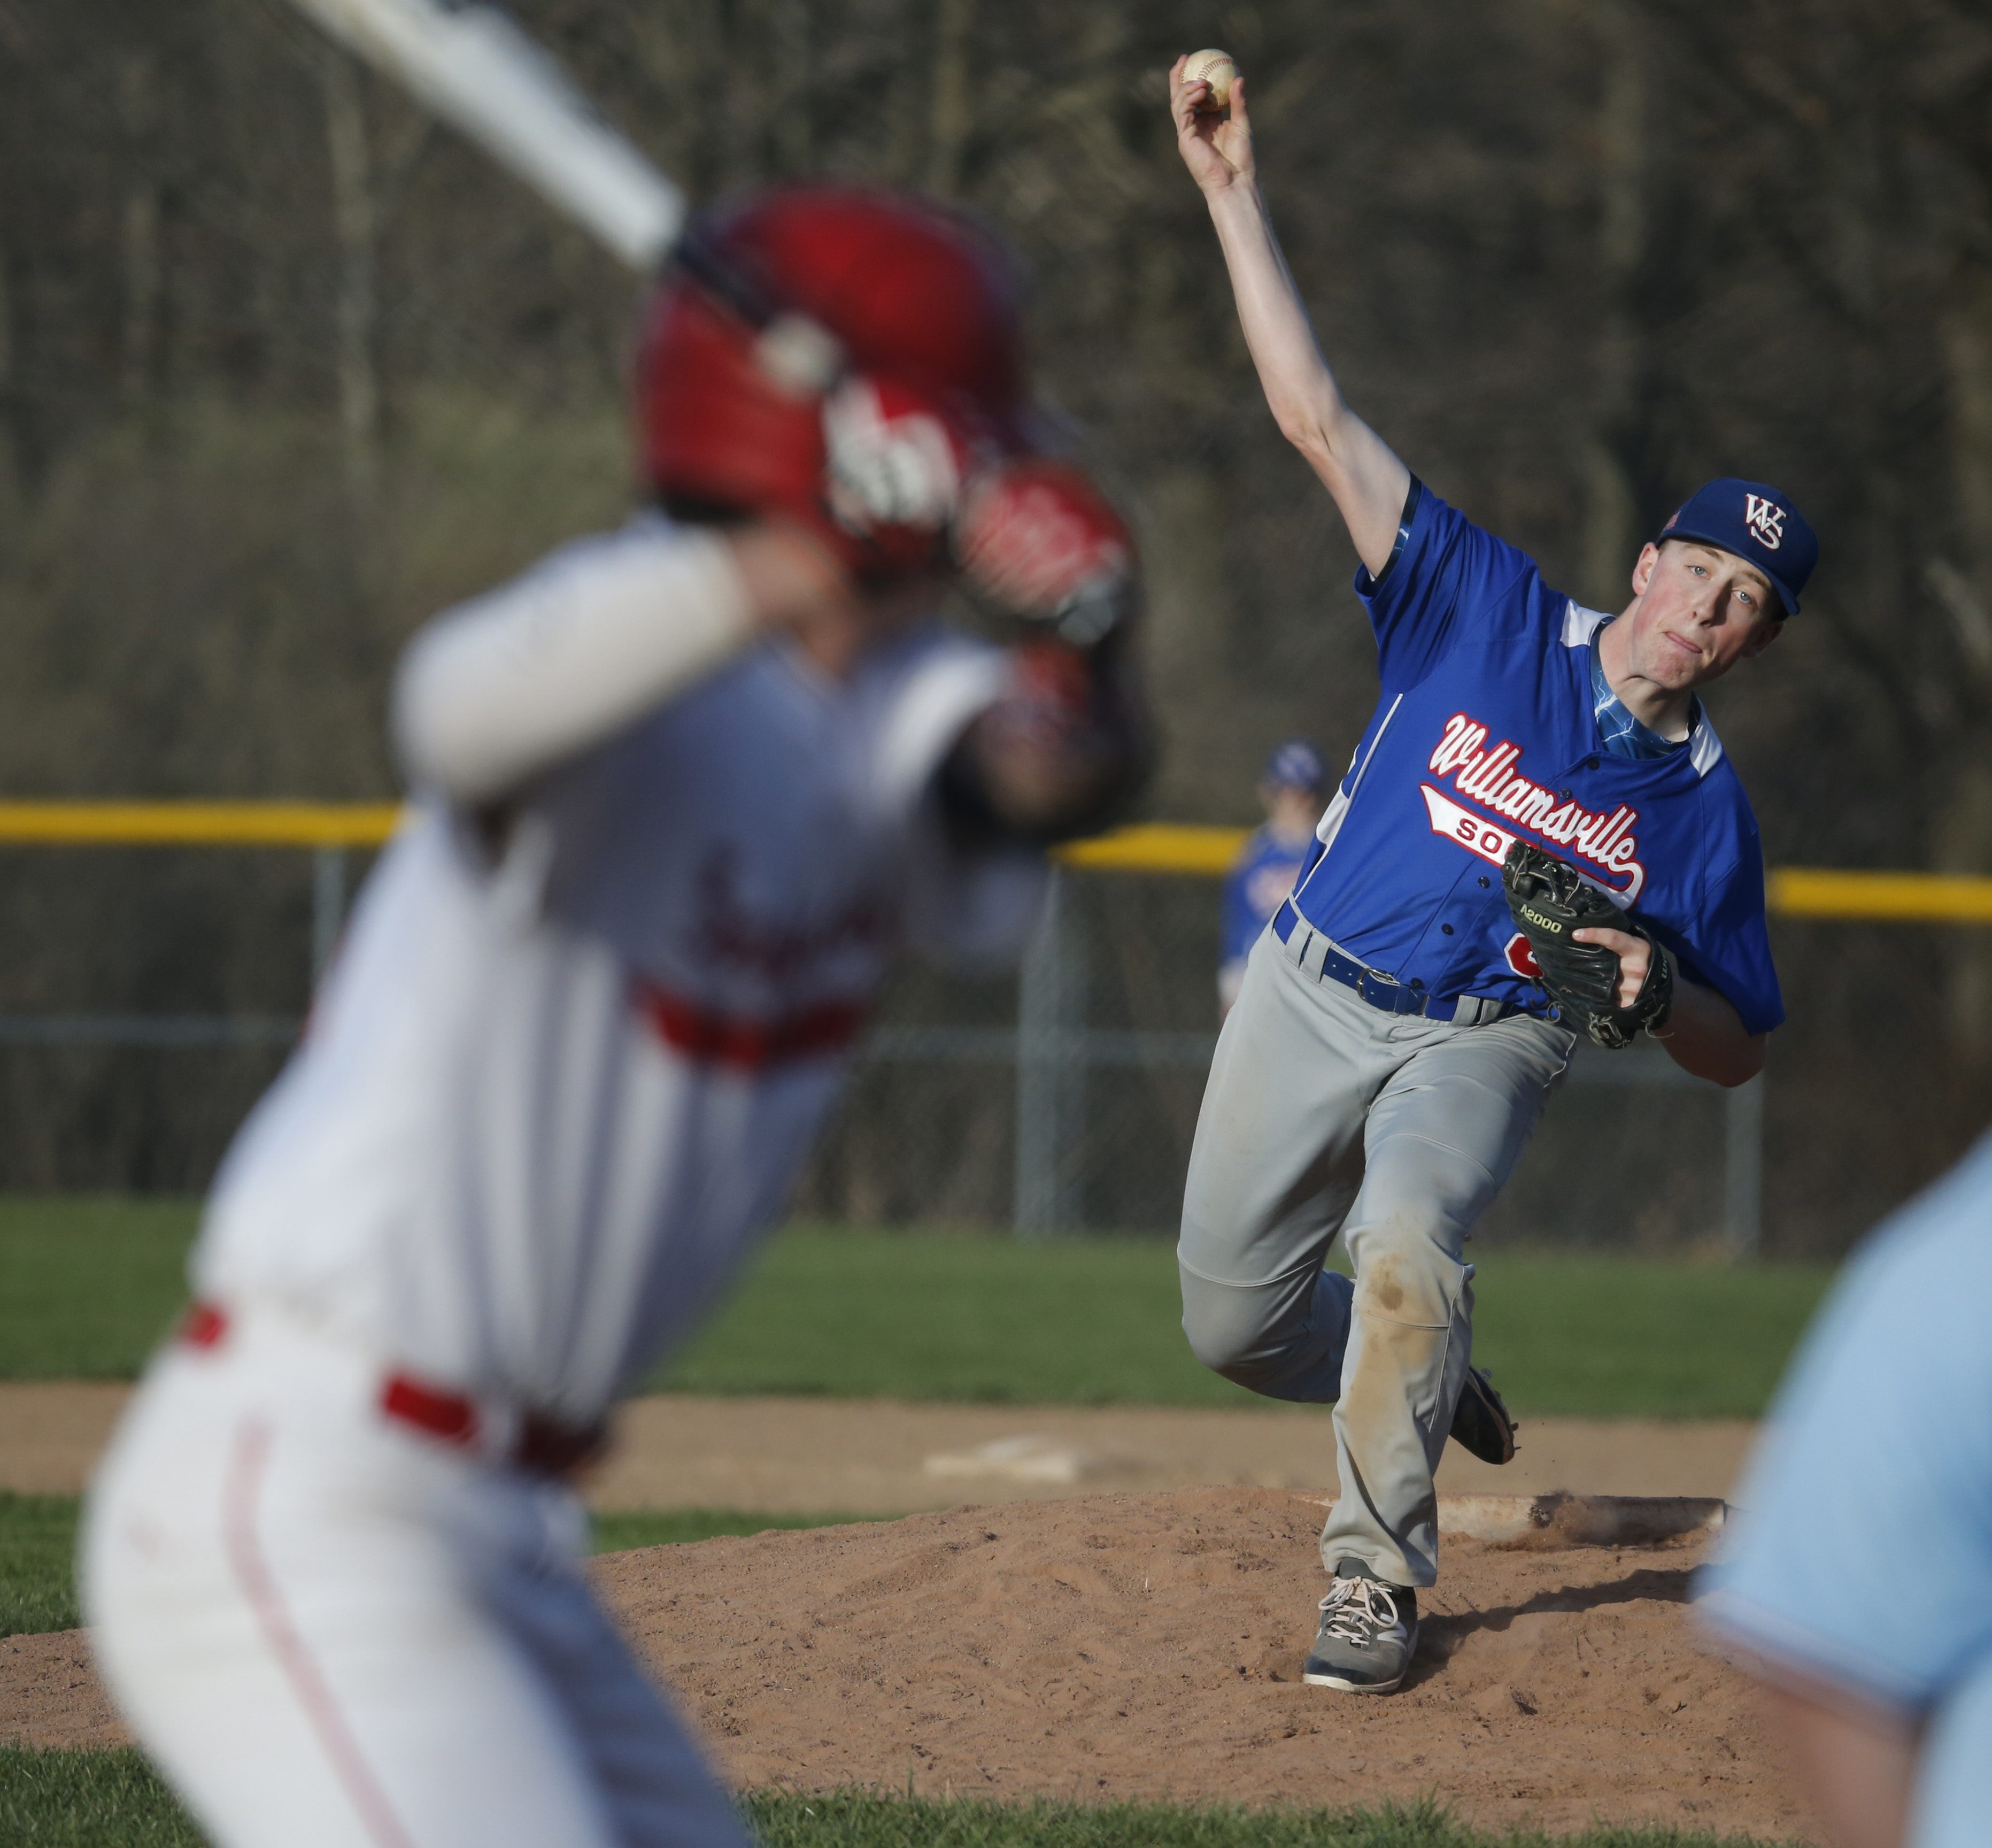 Williamsville South pitcher Joe Zanelotti went the distance for a complete game in the Billies' 13-2 win over Iroquois Wednesday.